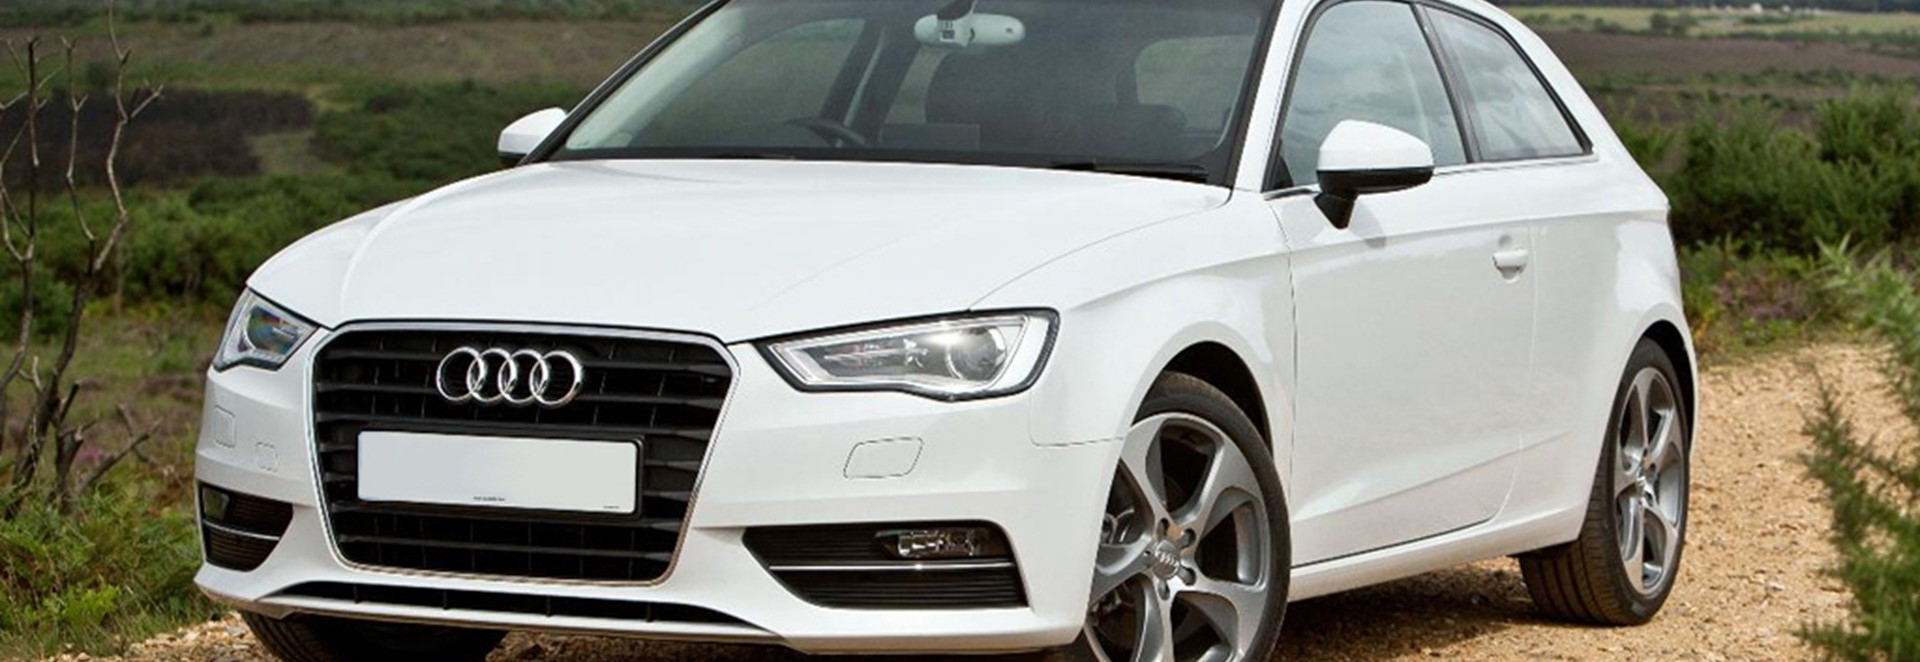 Audi A3 Prices